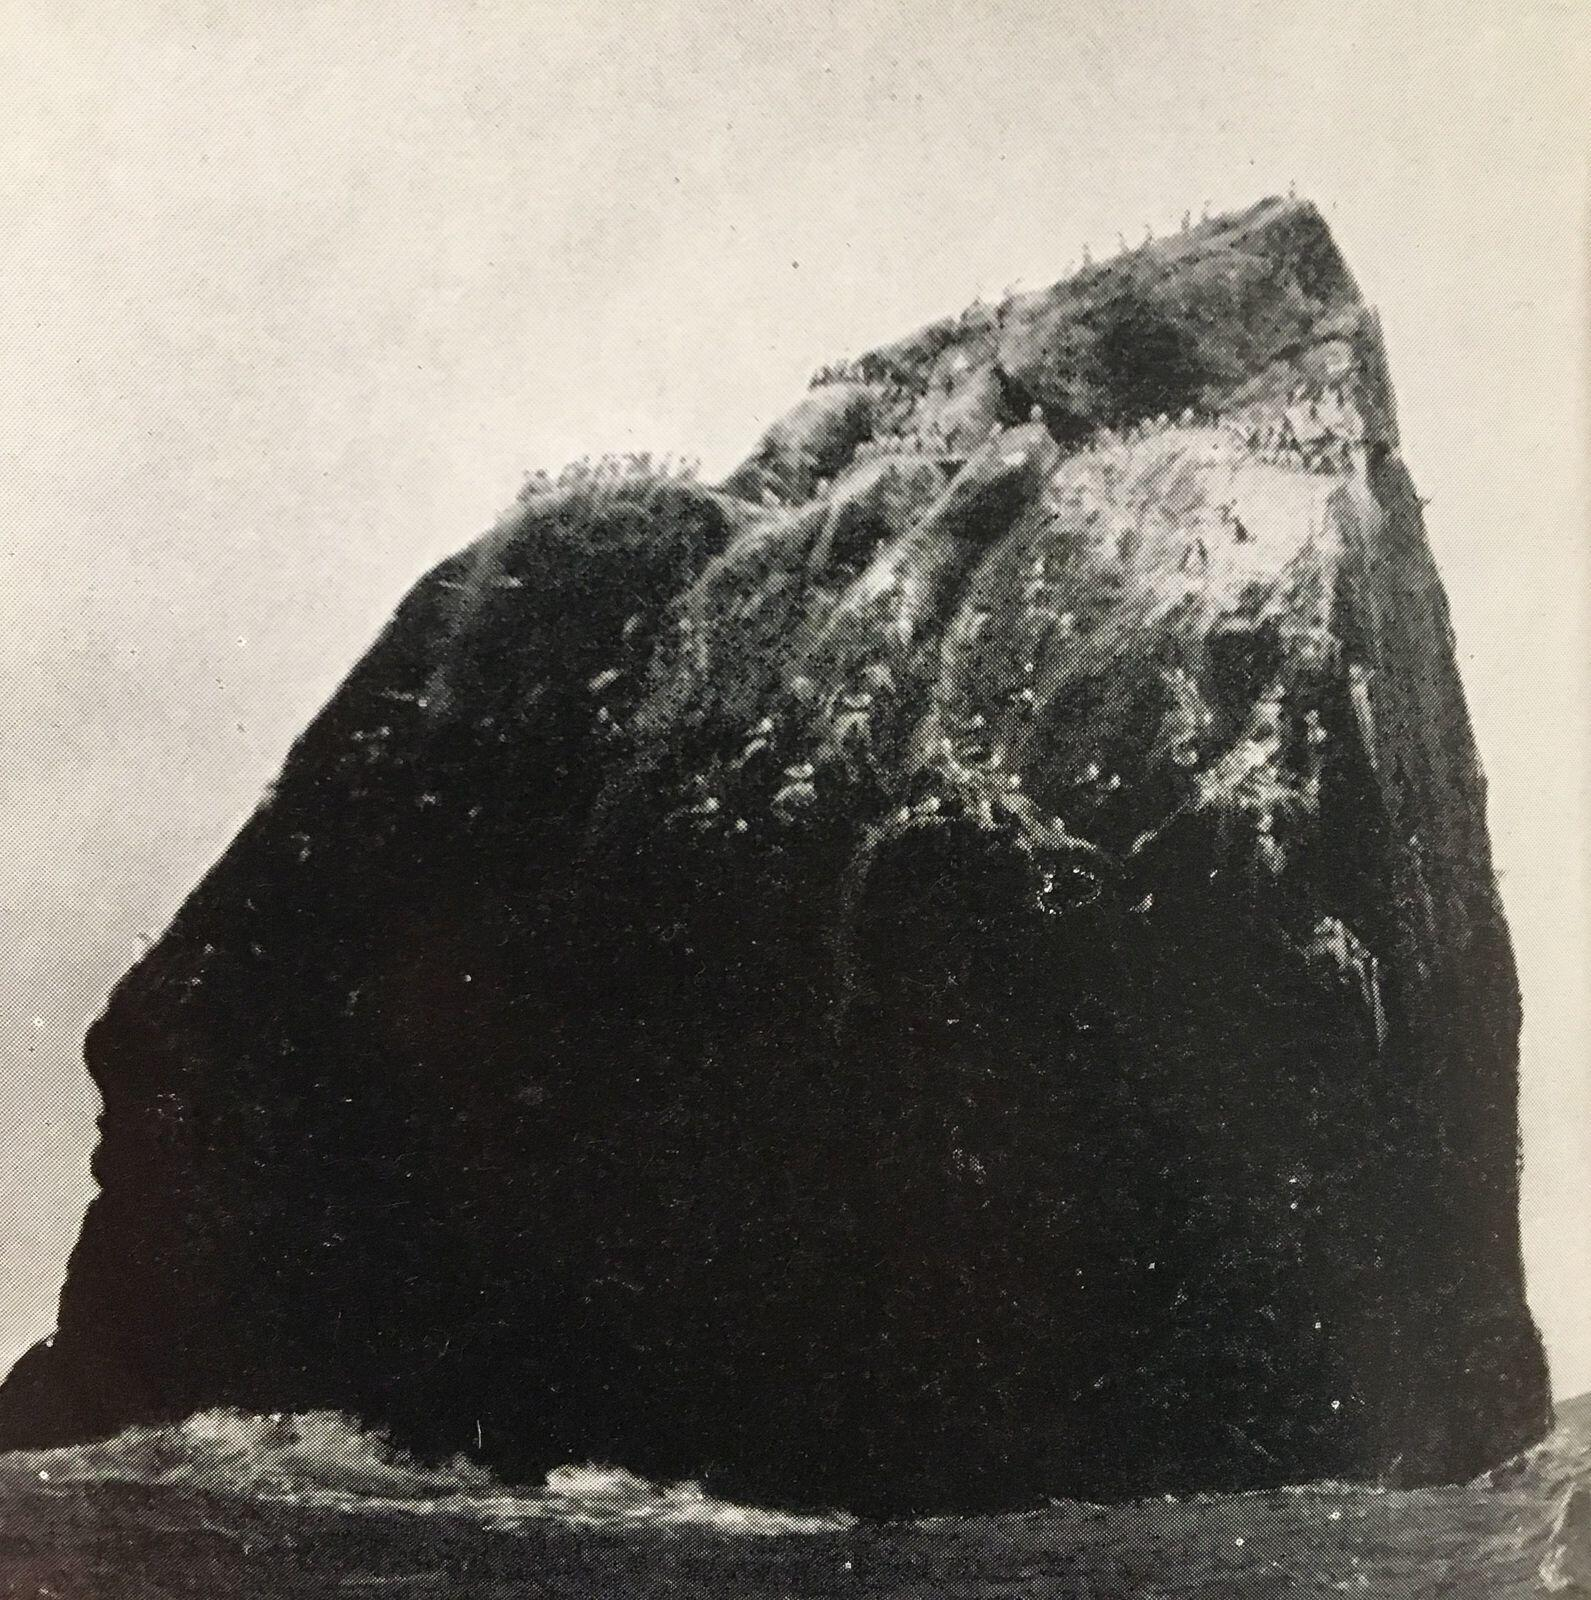 16: The First Conquest of Rockall